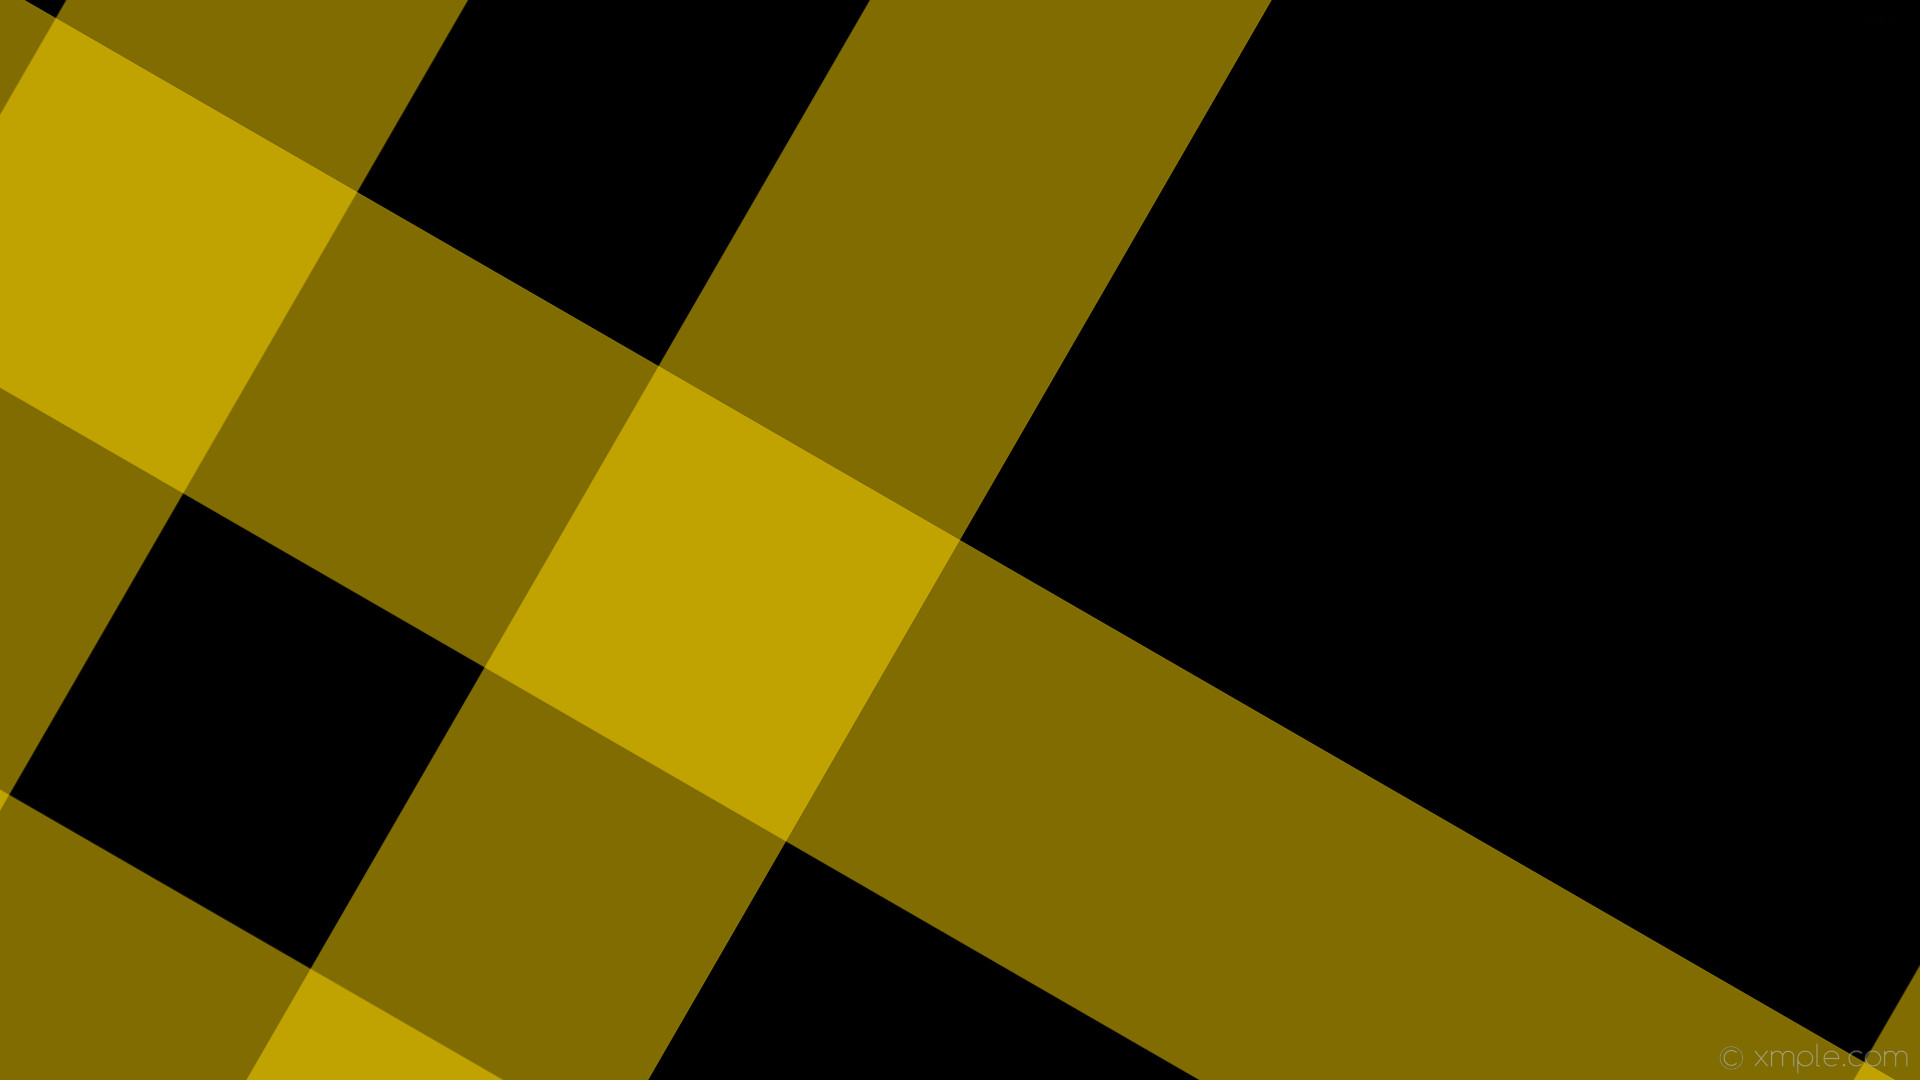 1920x1080 wallpaper striped dual black yellow gingham gold #000000 #ffd700 240° 348px